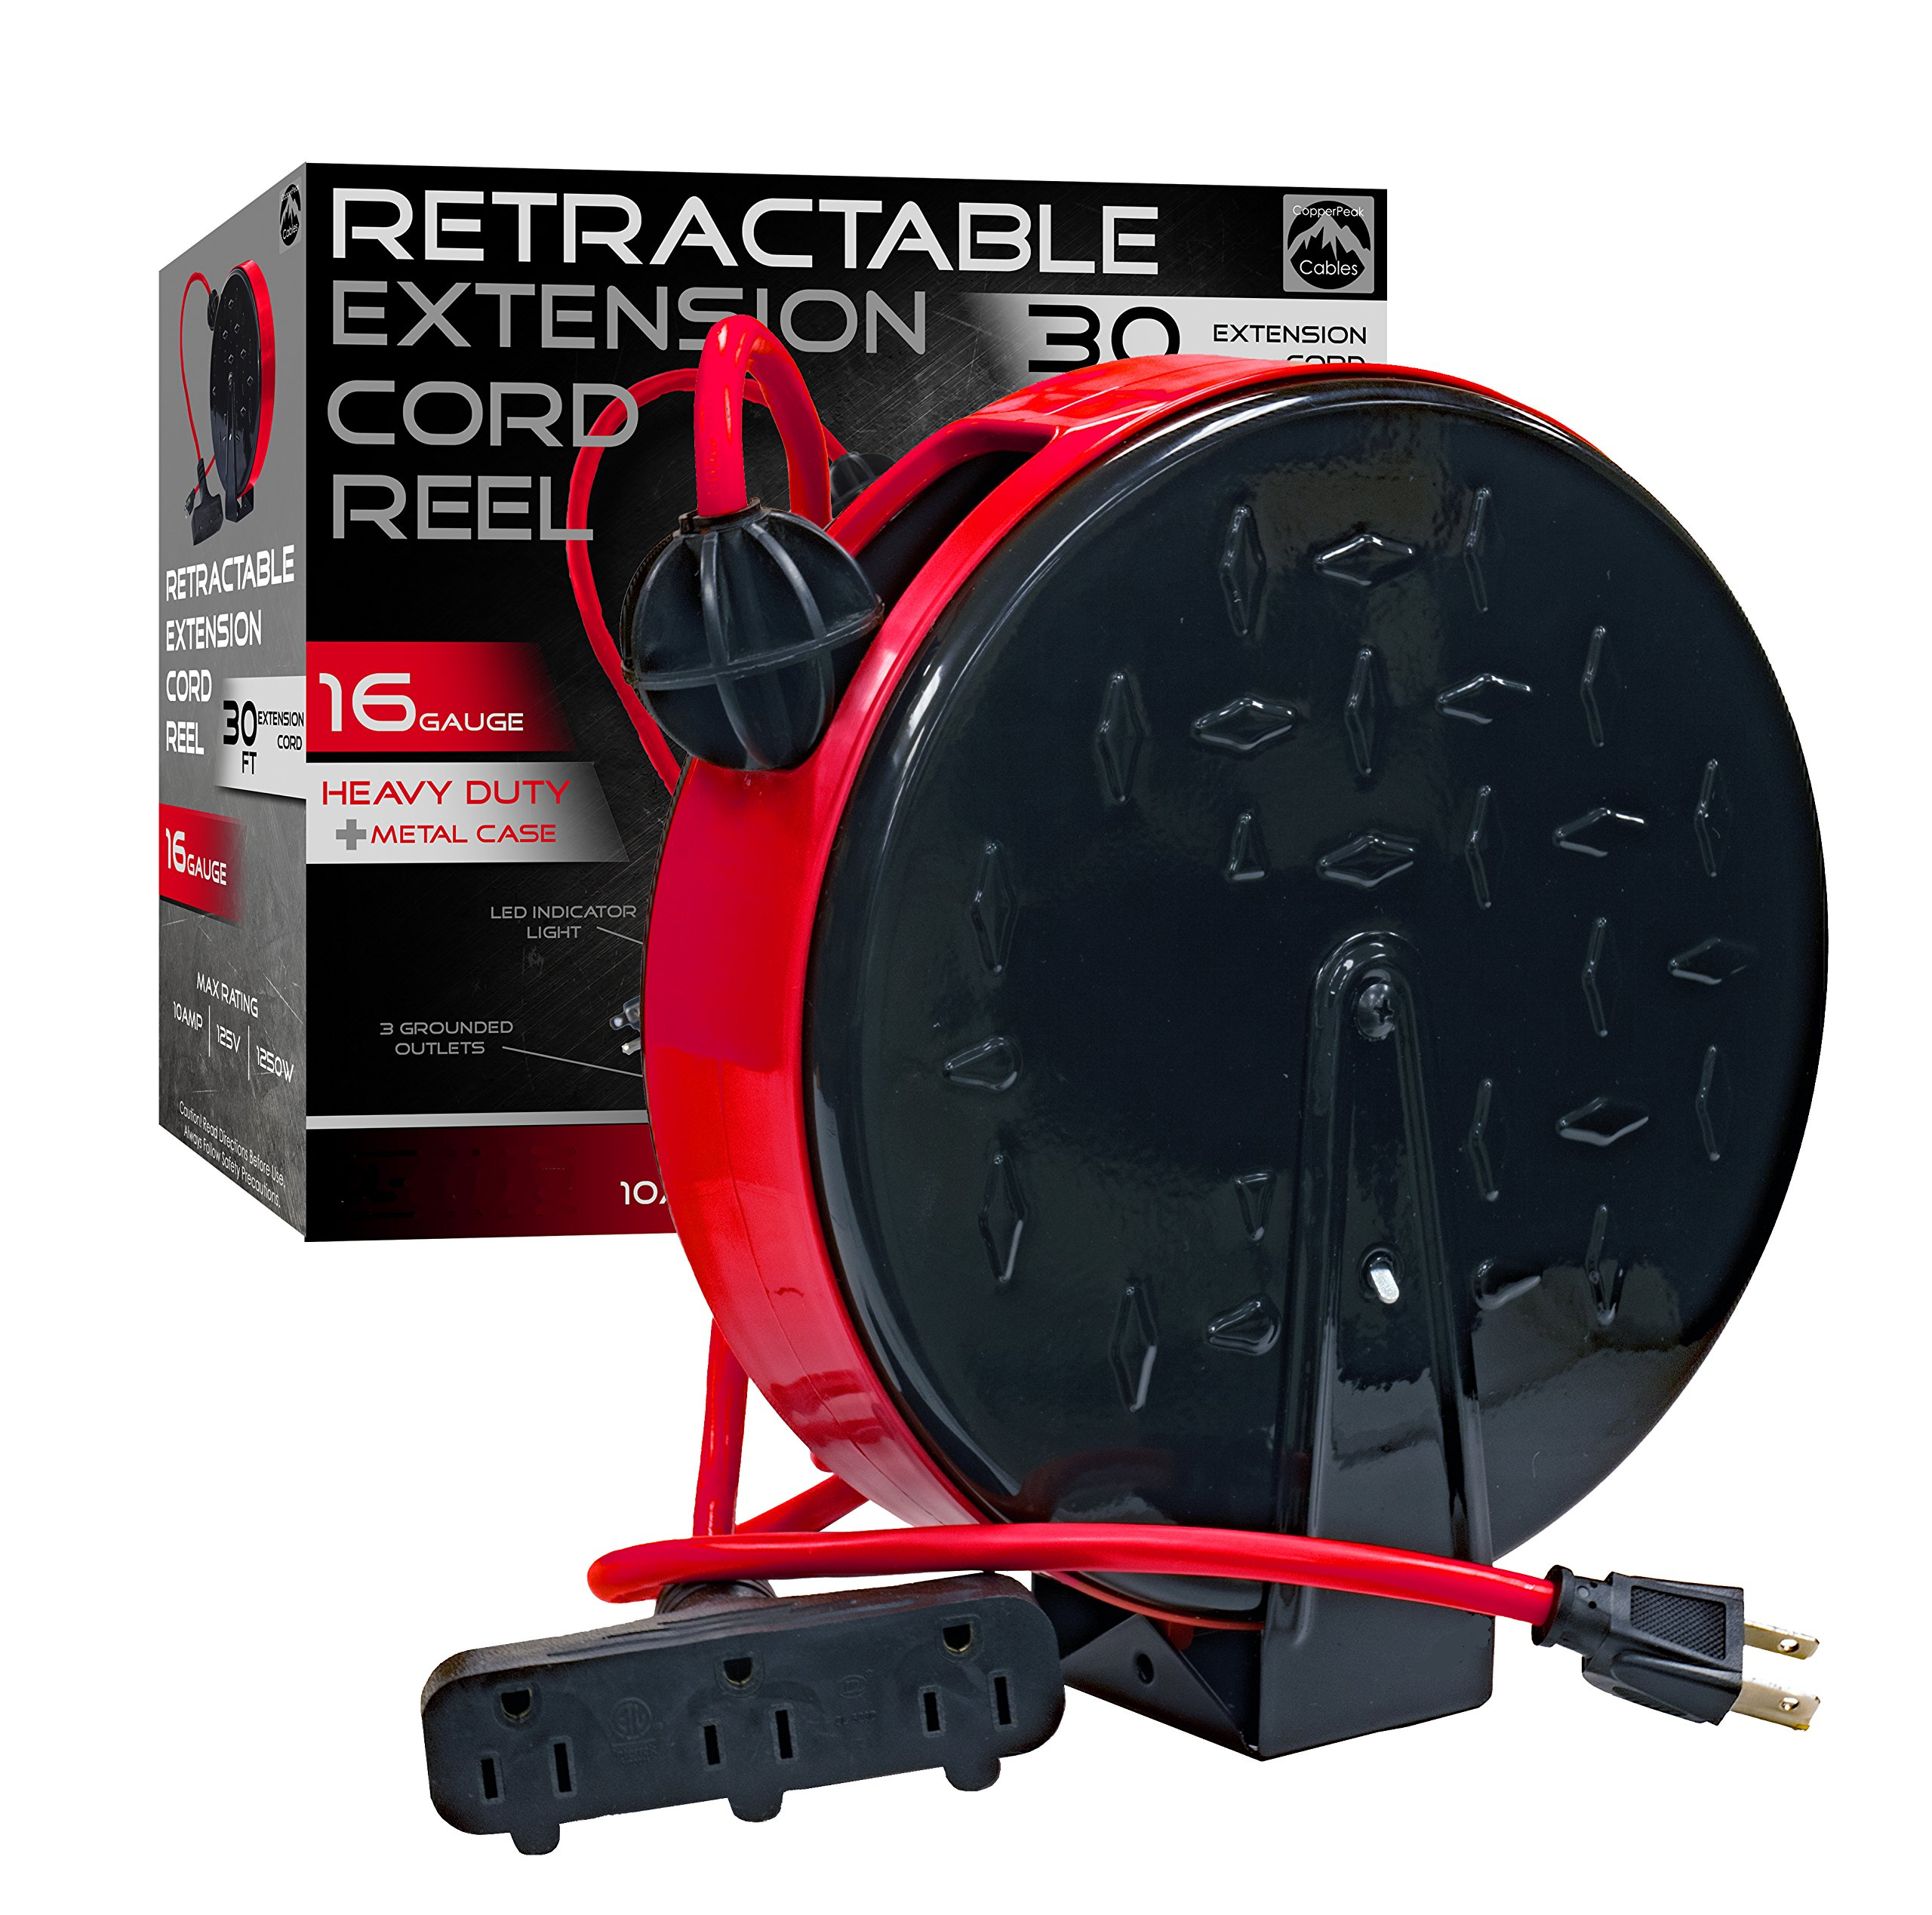 CopperPeak 30 ft Retractable Extension Cord Reel - Ceiling or Wall Mount - 16 gauge - Red and Black